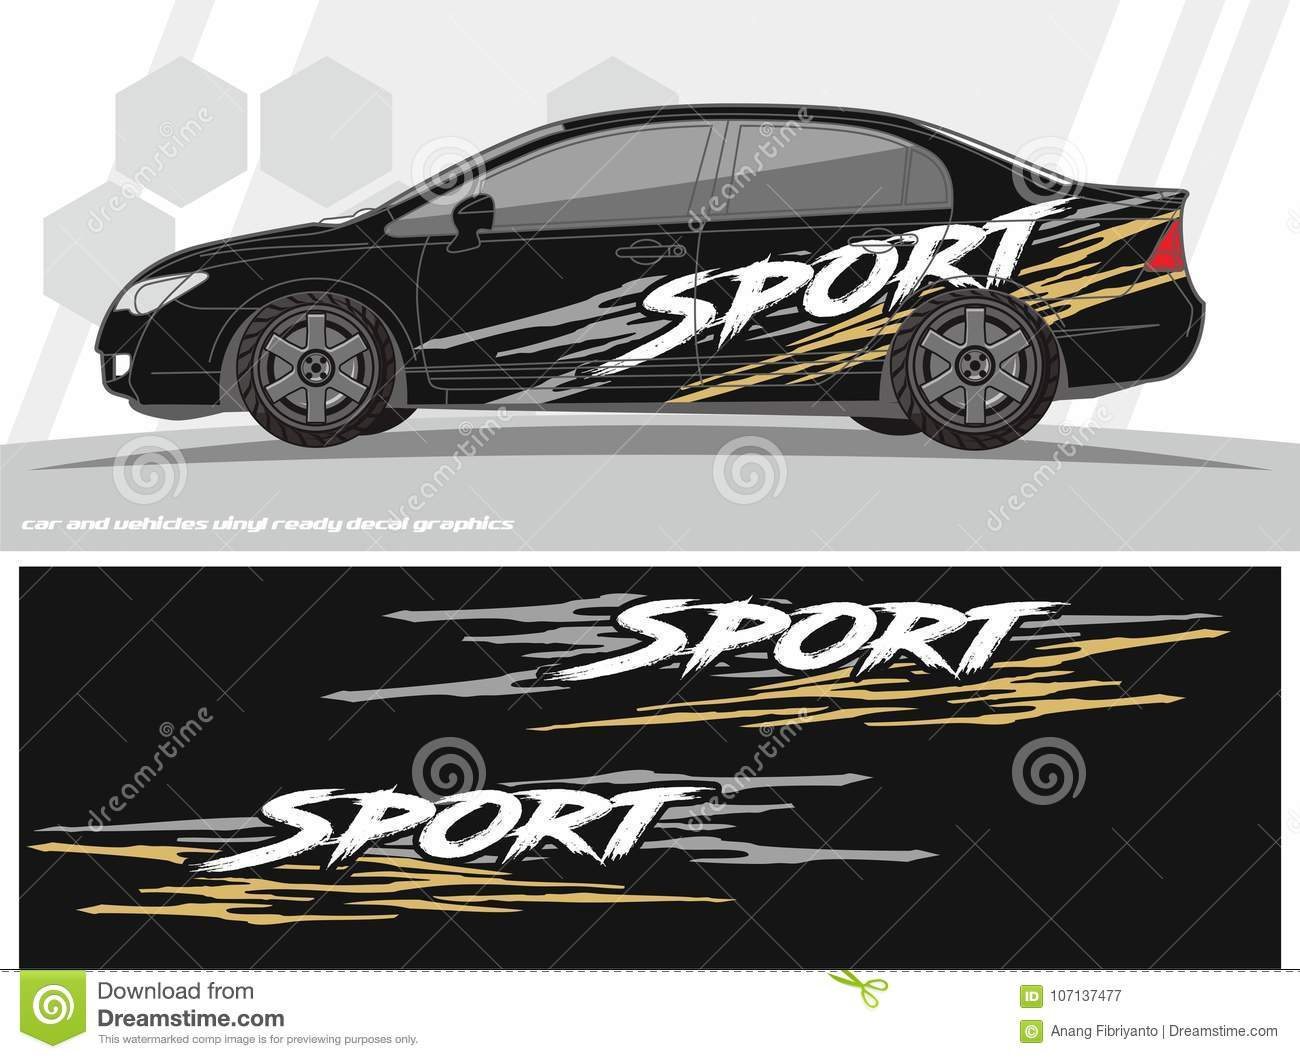 Sporty car and vehicles decal graphics kit designs ready to print and cut for vinyl